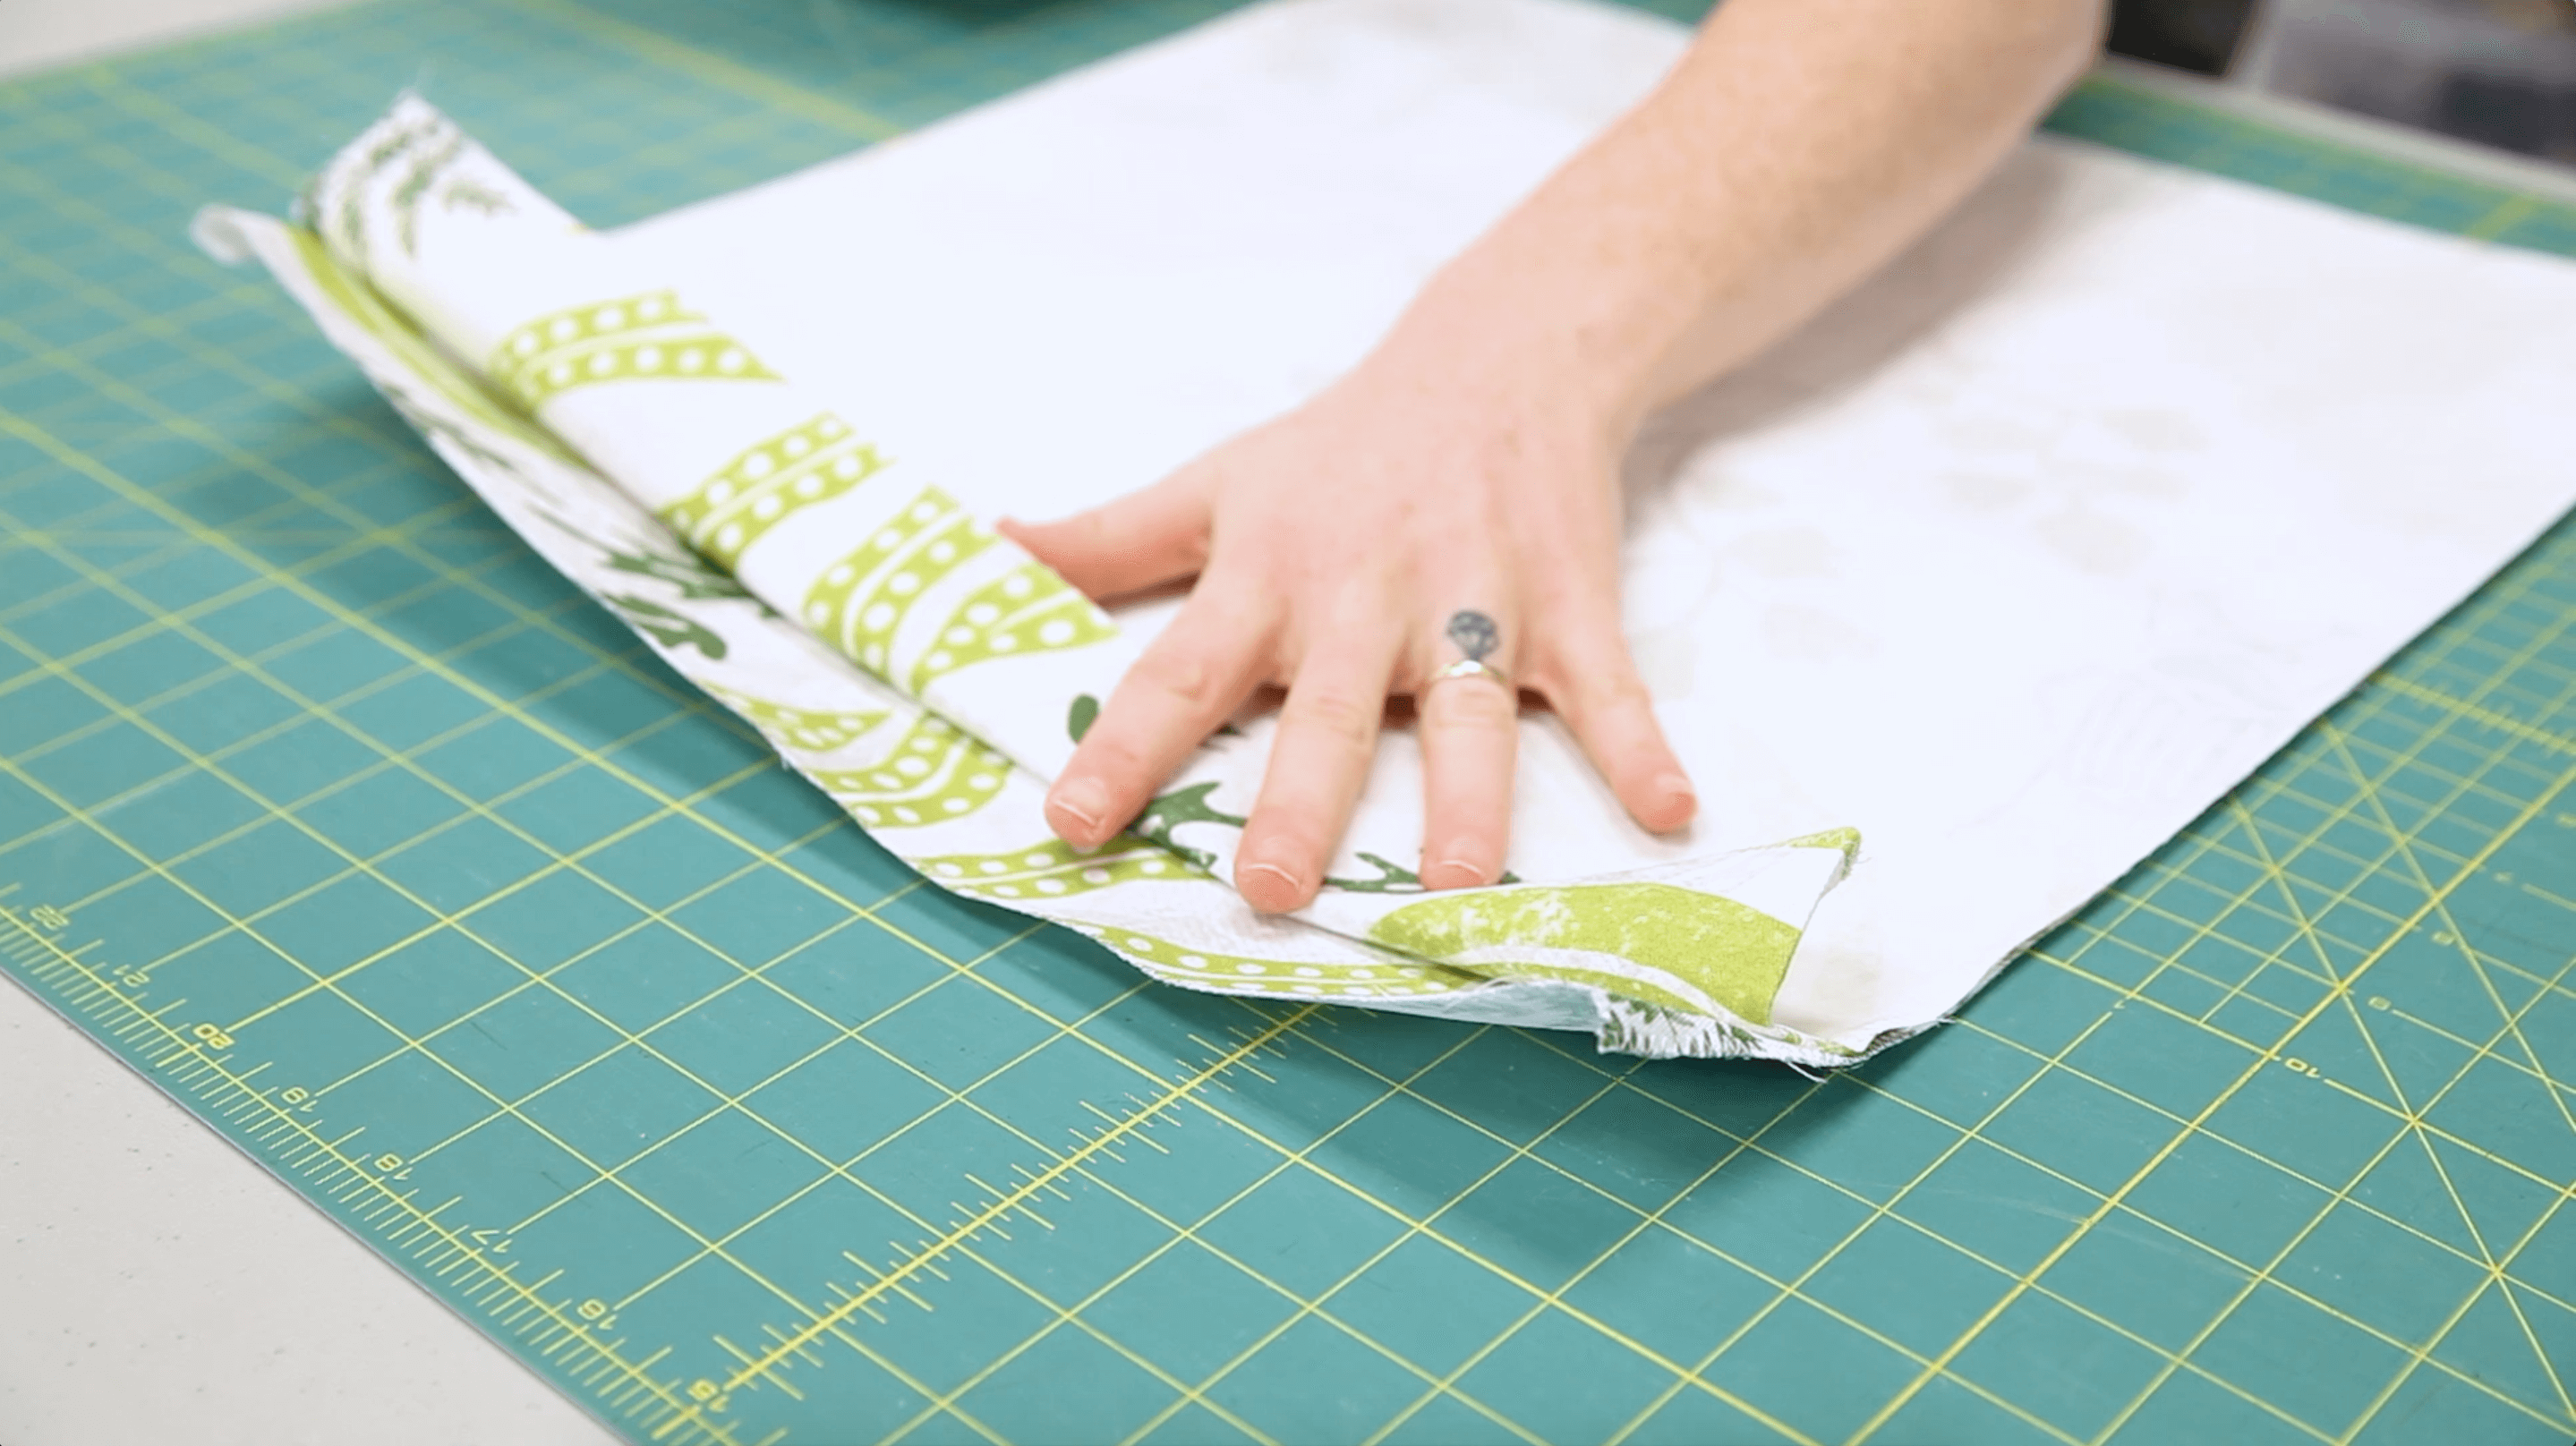 DIY Drawstring Backpack - fold down the top portion of the bag | Spoonflower Blog